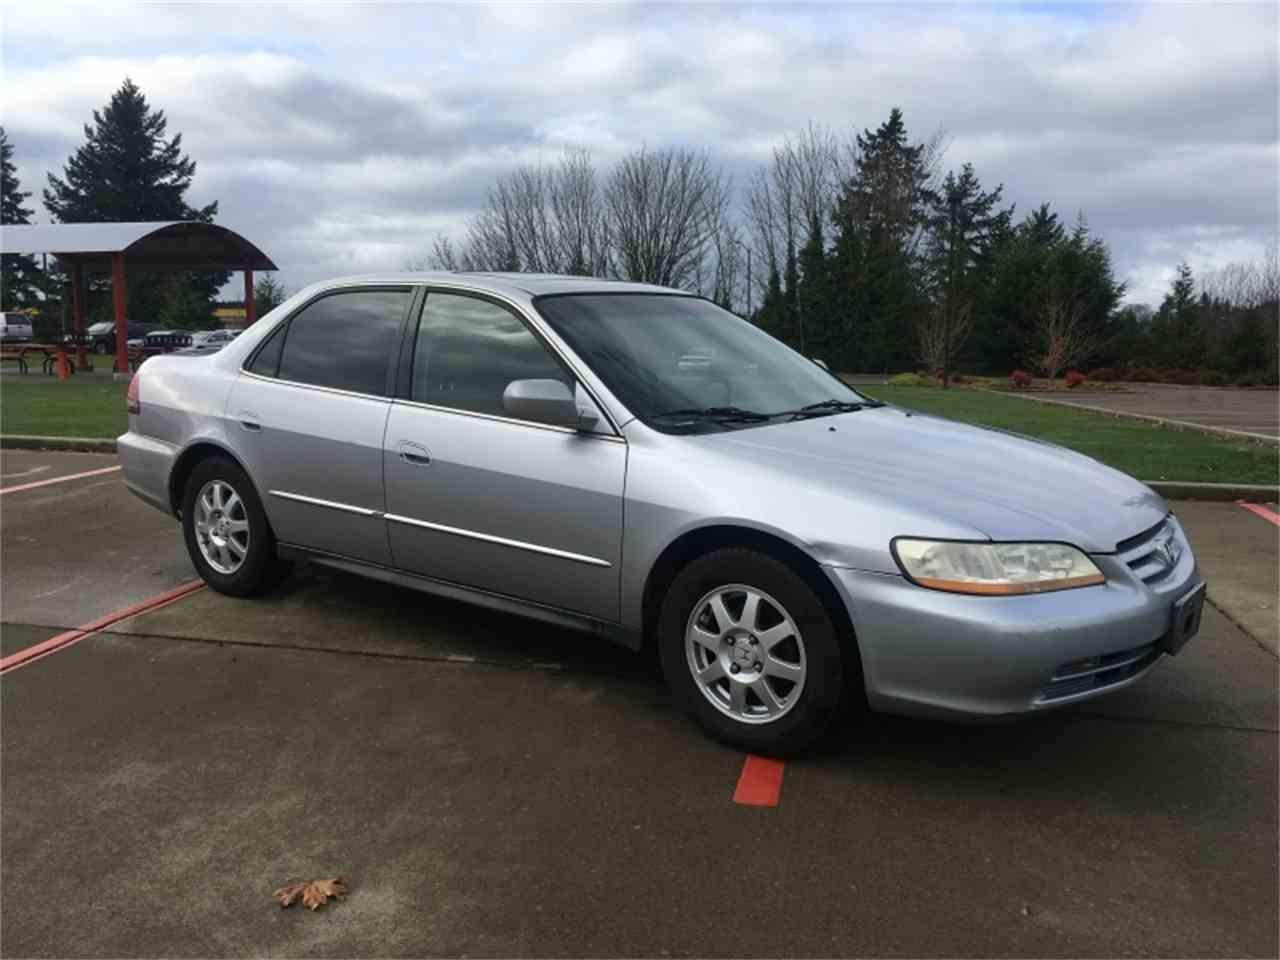 2002 honda accord for sale cc 1046618 for Honda accord old model